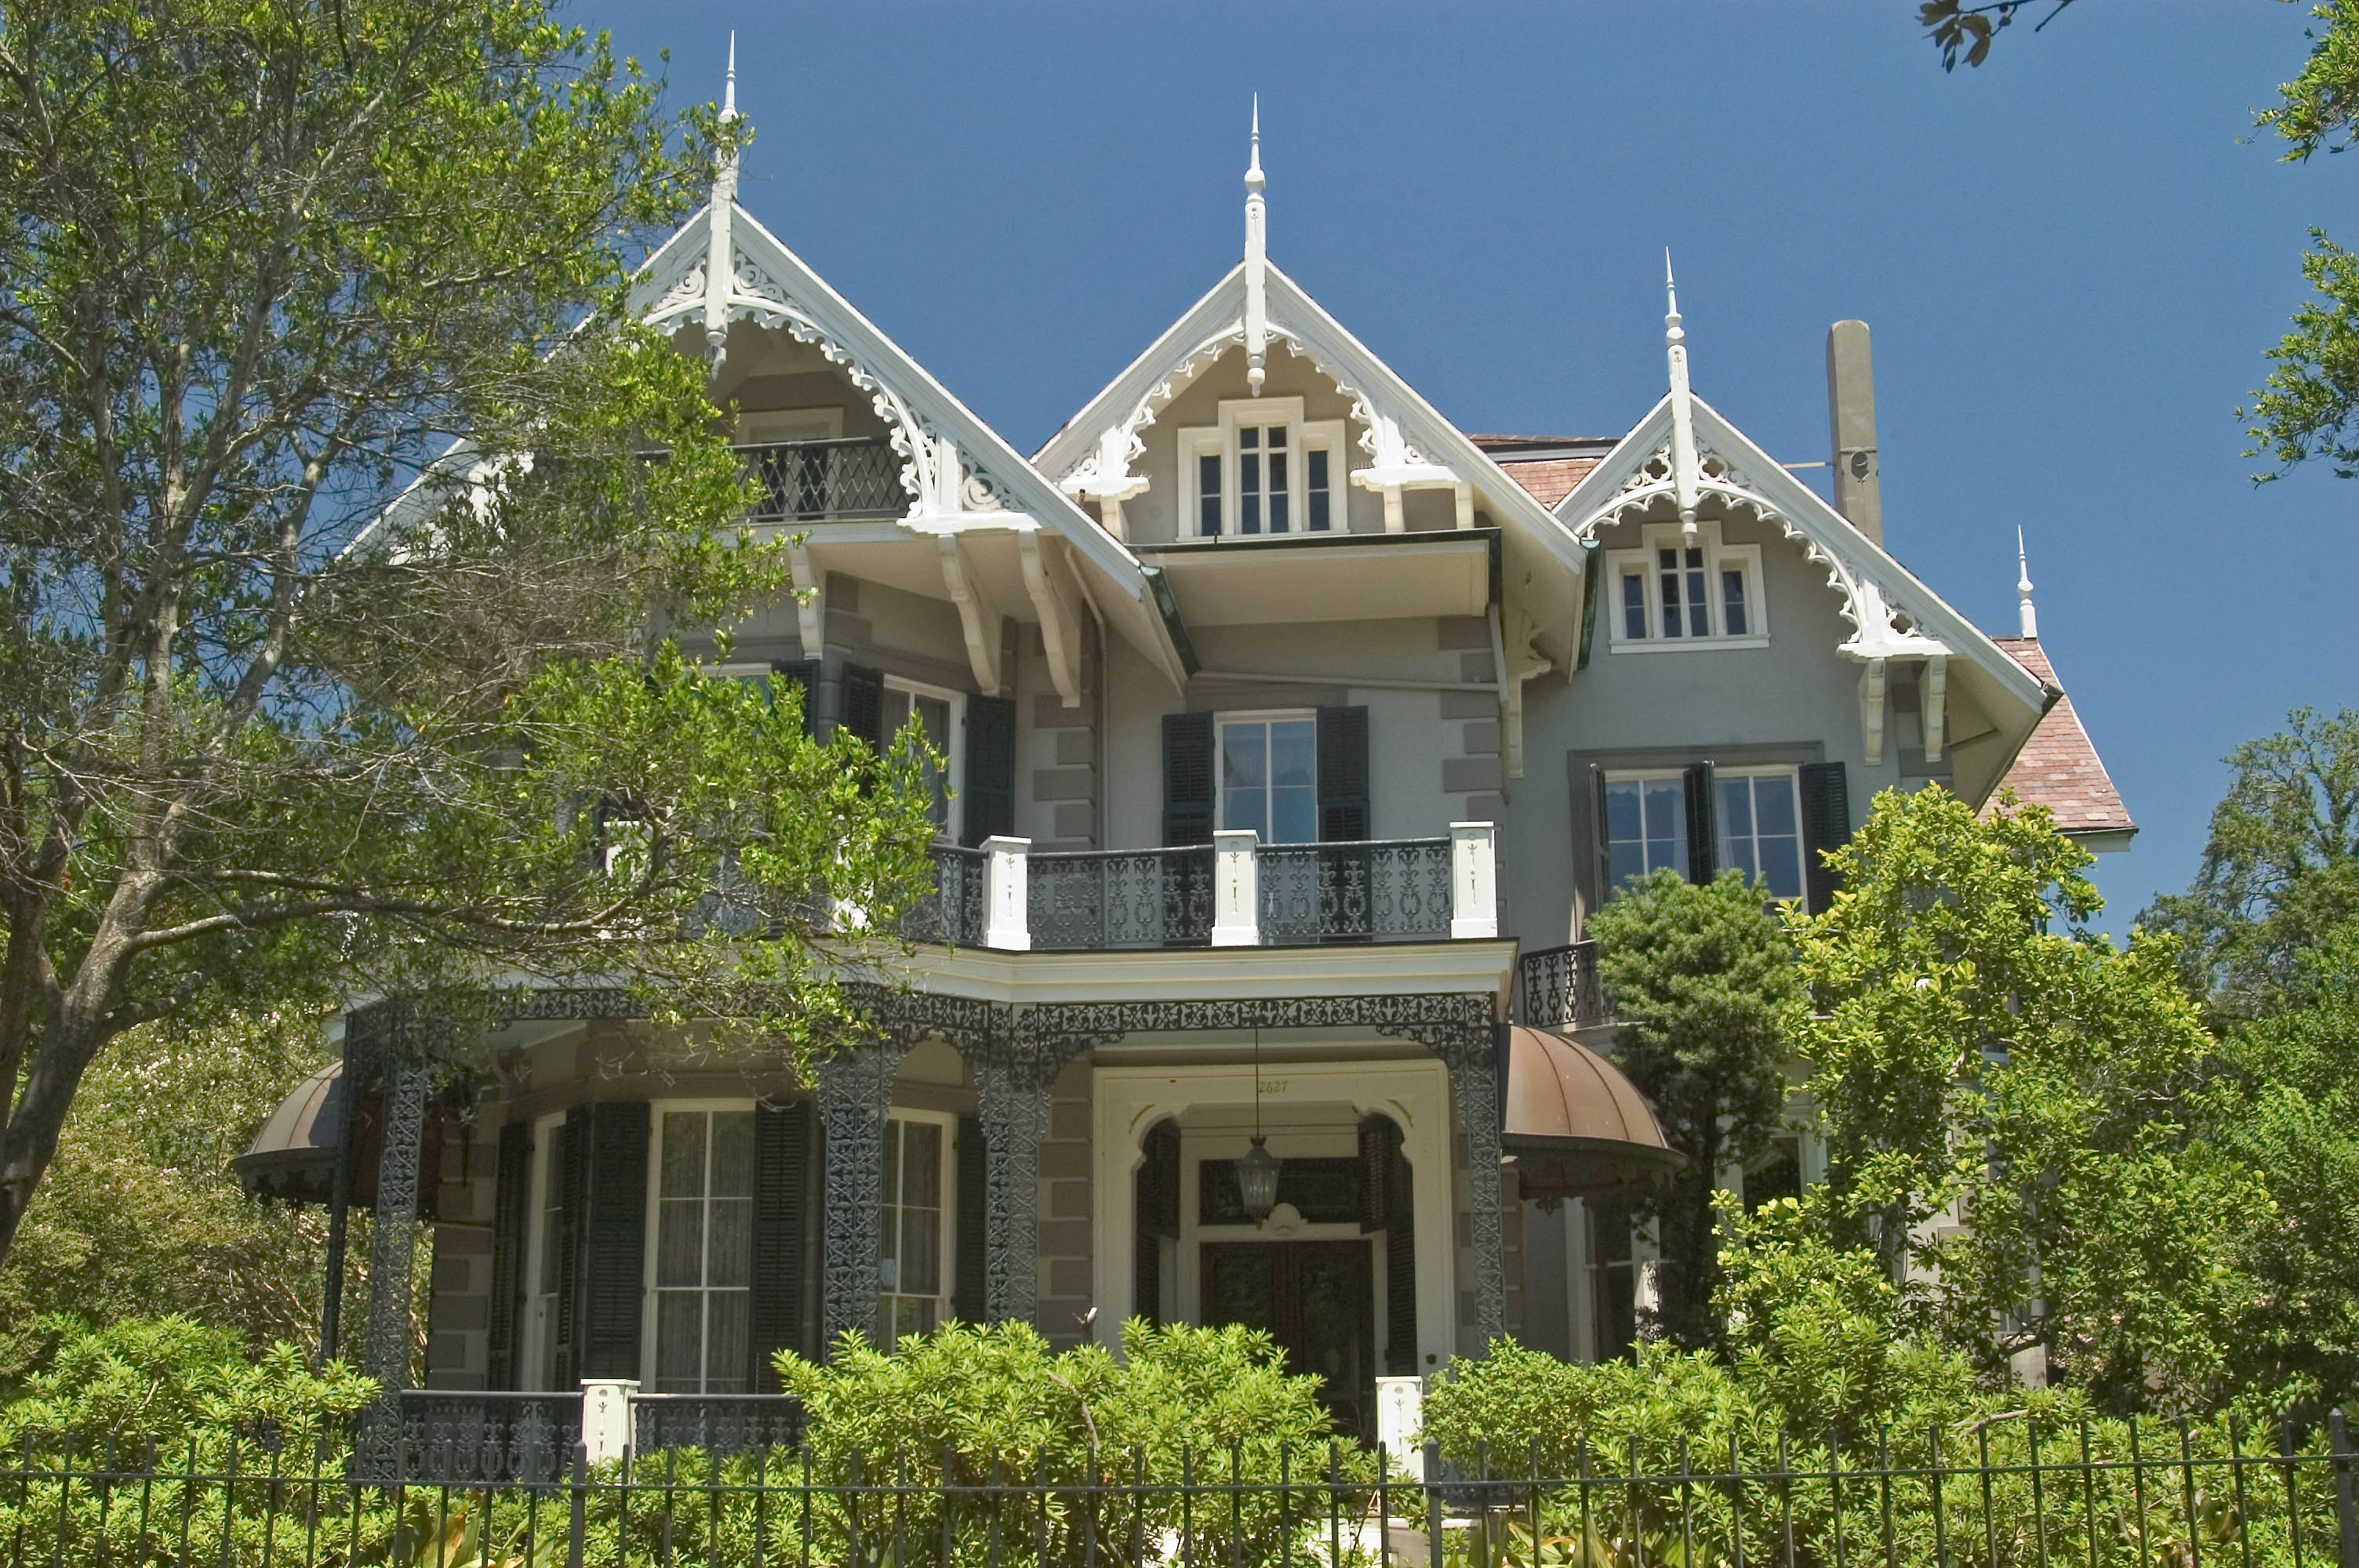 algiers_bywater_new-koch_mays_house_1860_1870